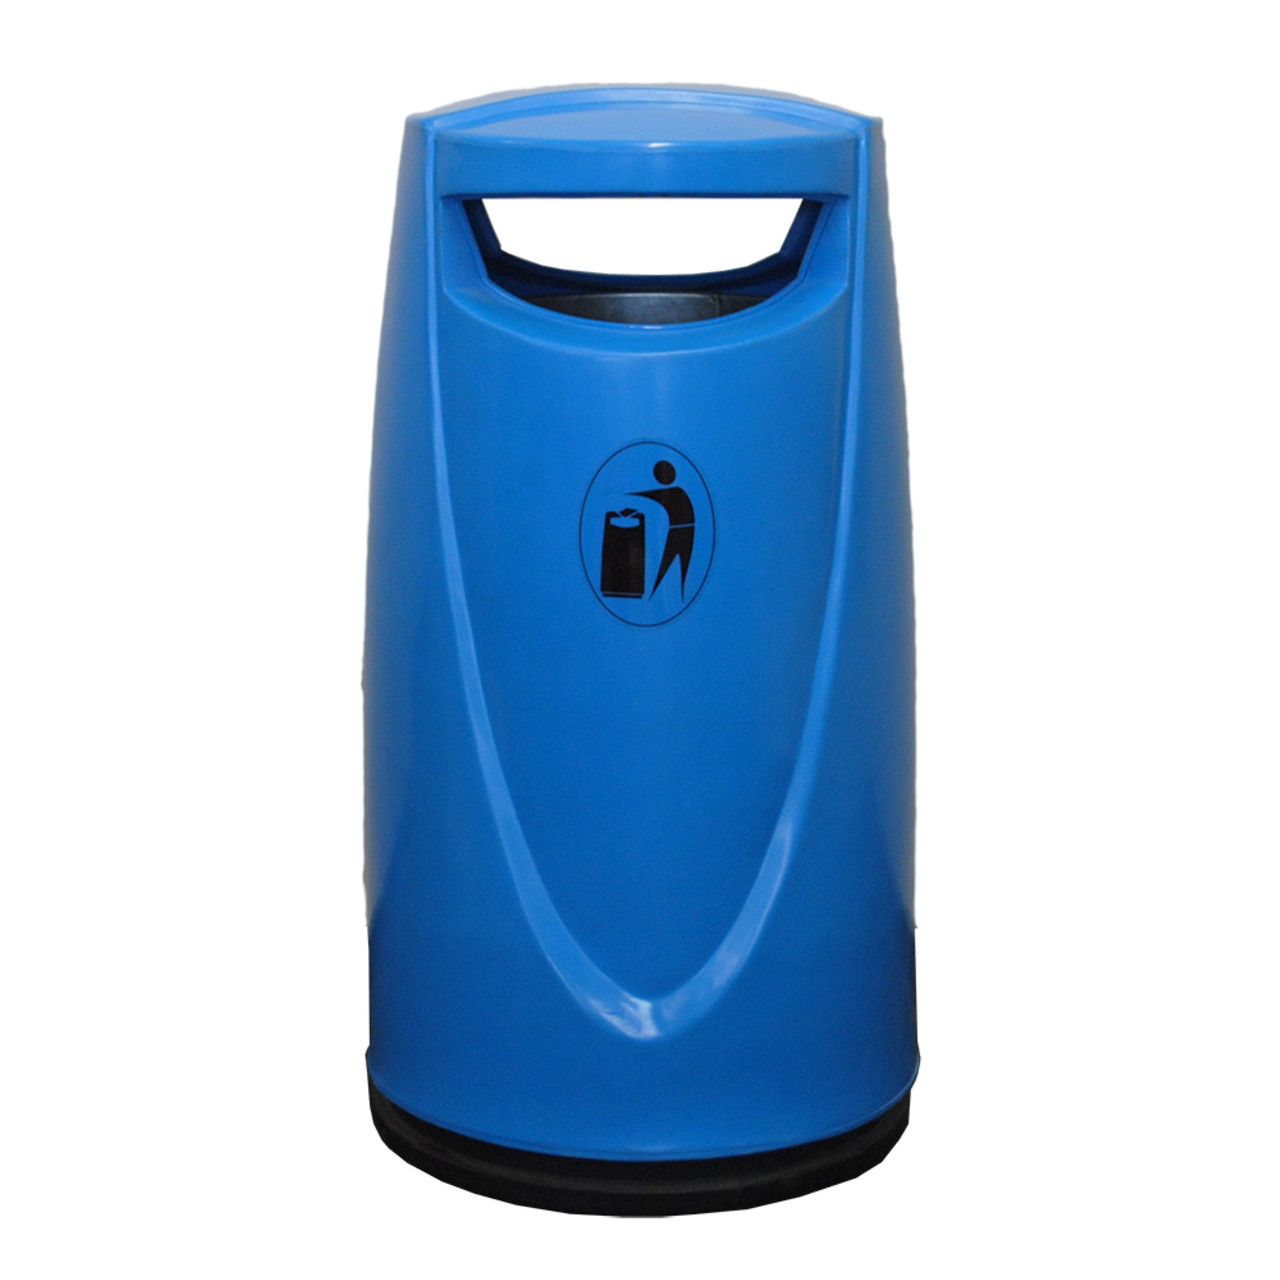 Darcy locking outdoor litter bin 90 litre